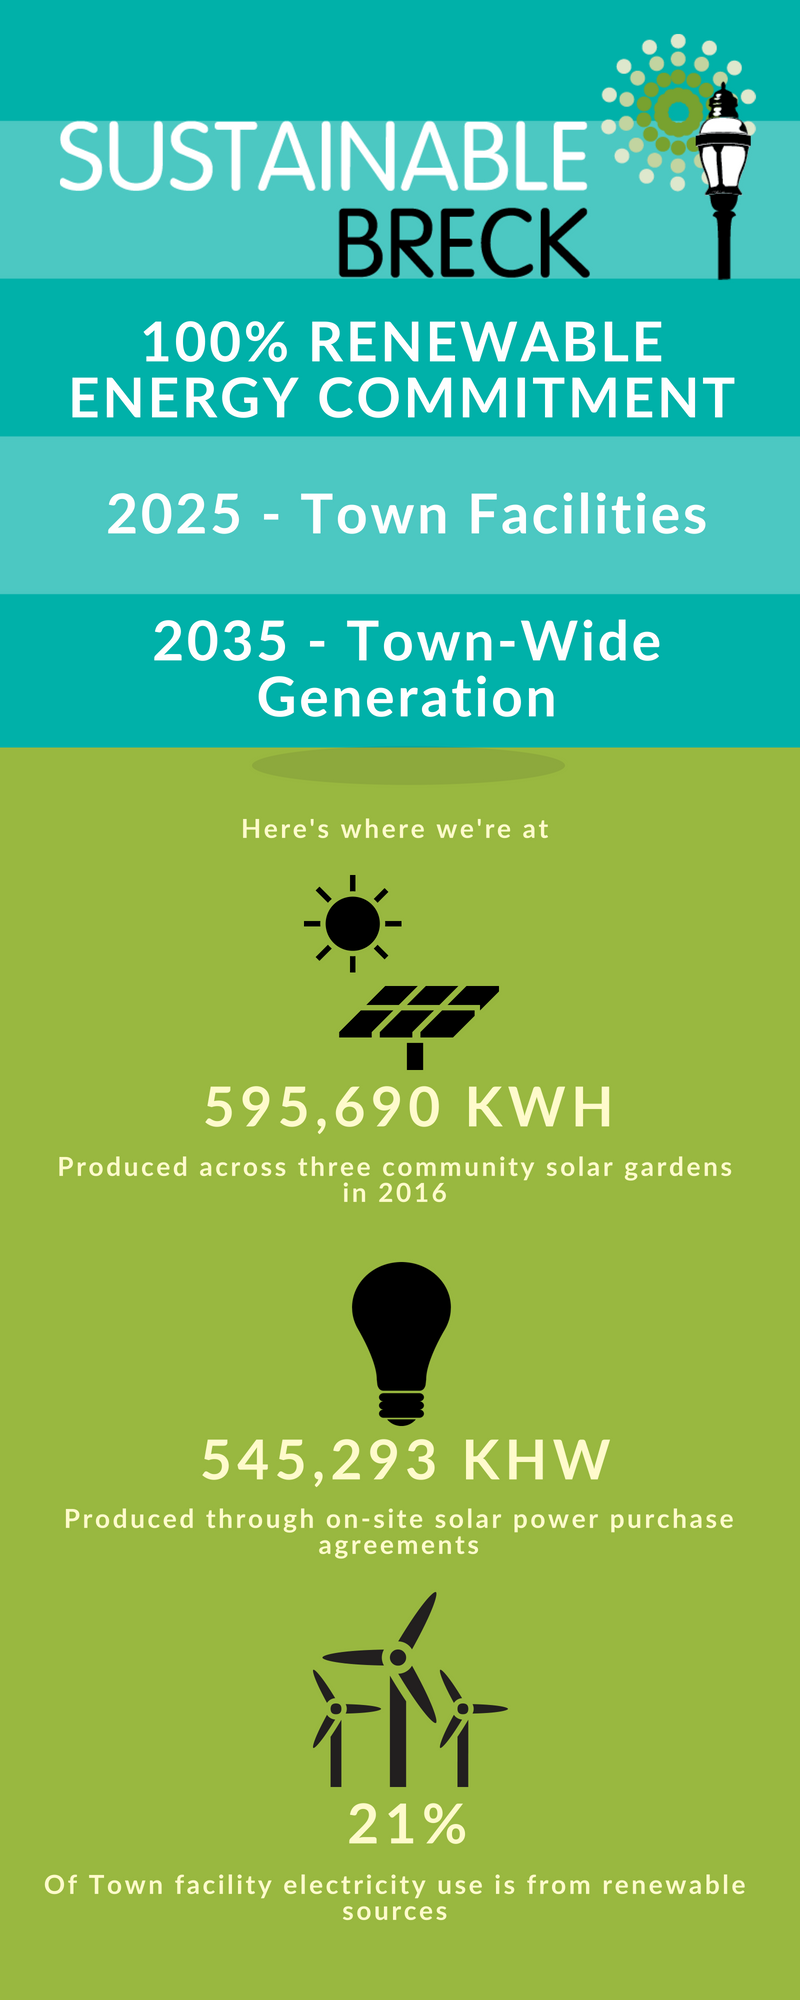 This infographic describes where Breckenridge is with their 100% renewable energy goals